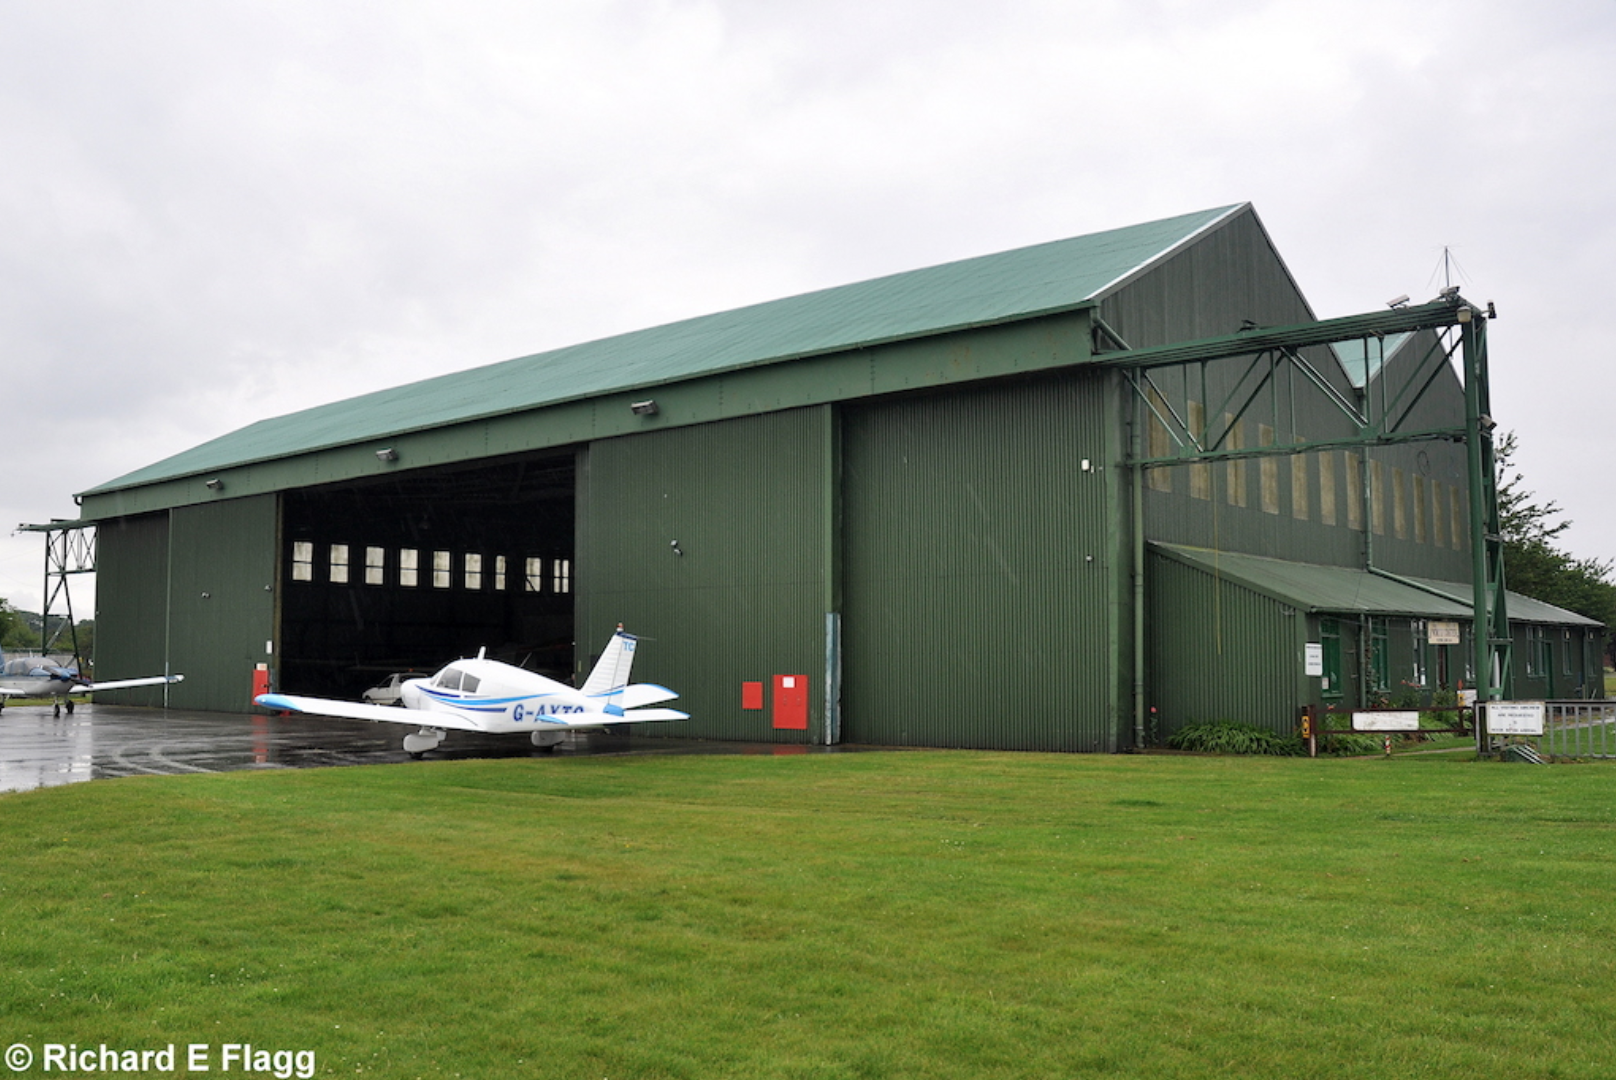 002Hangar - 6 July 2014.png